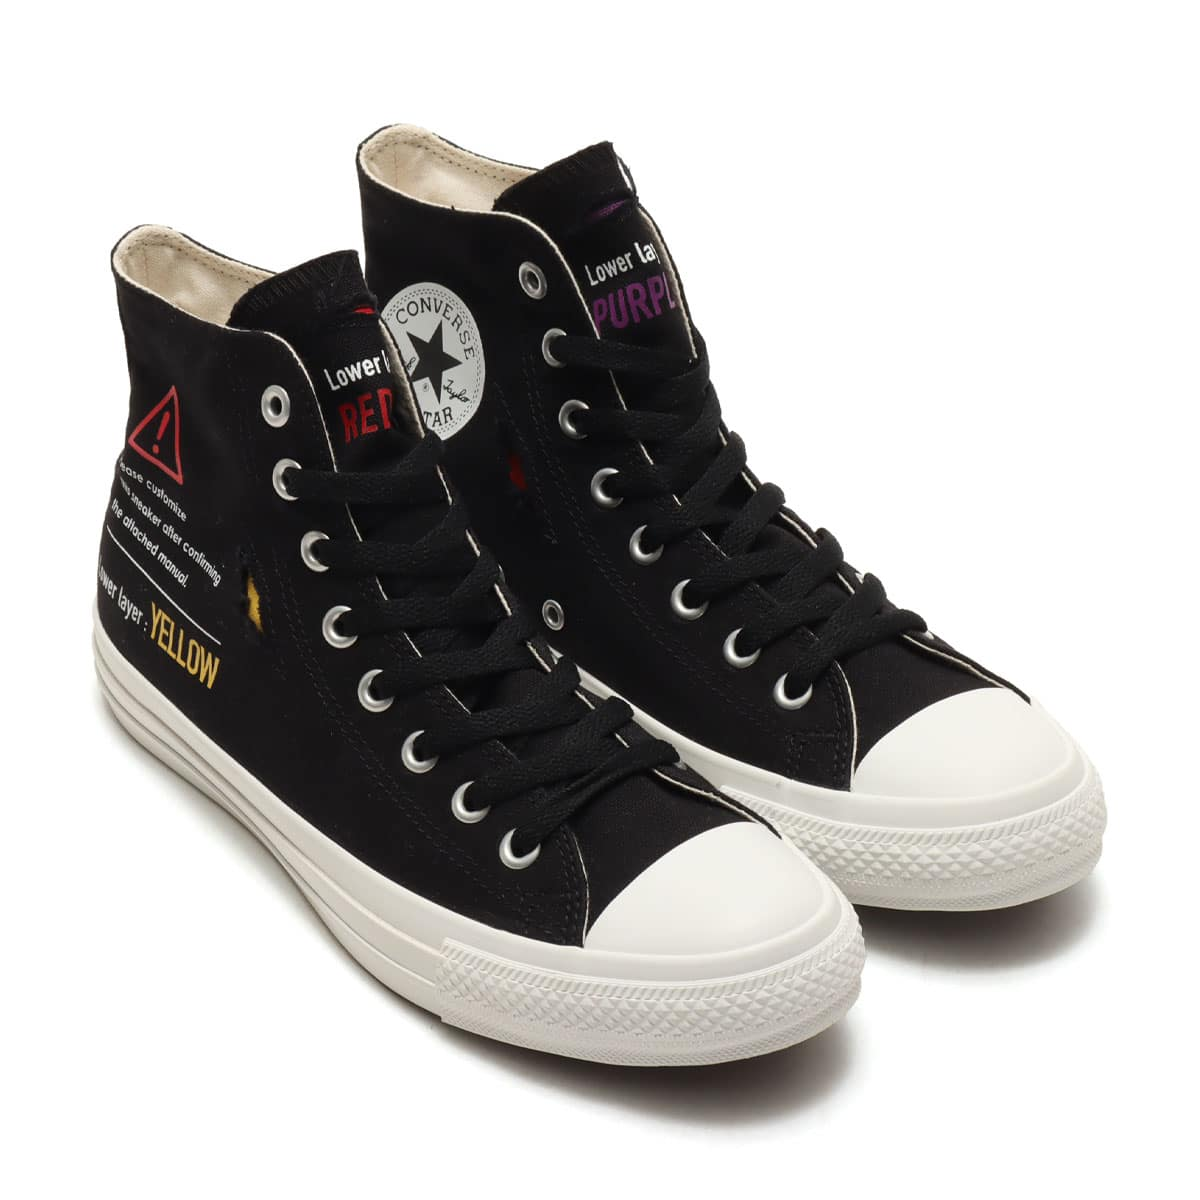 CONVERSE ALL STAR RIPLAYYER Ⅱ HI BLACK 21SS-I_photo_large